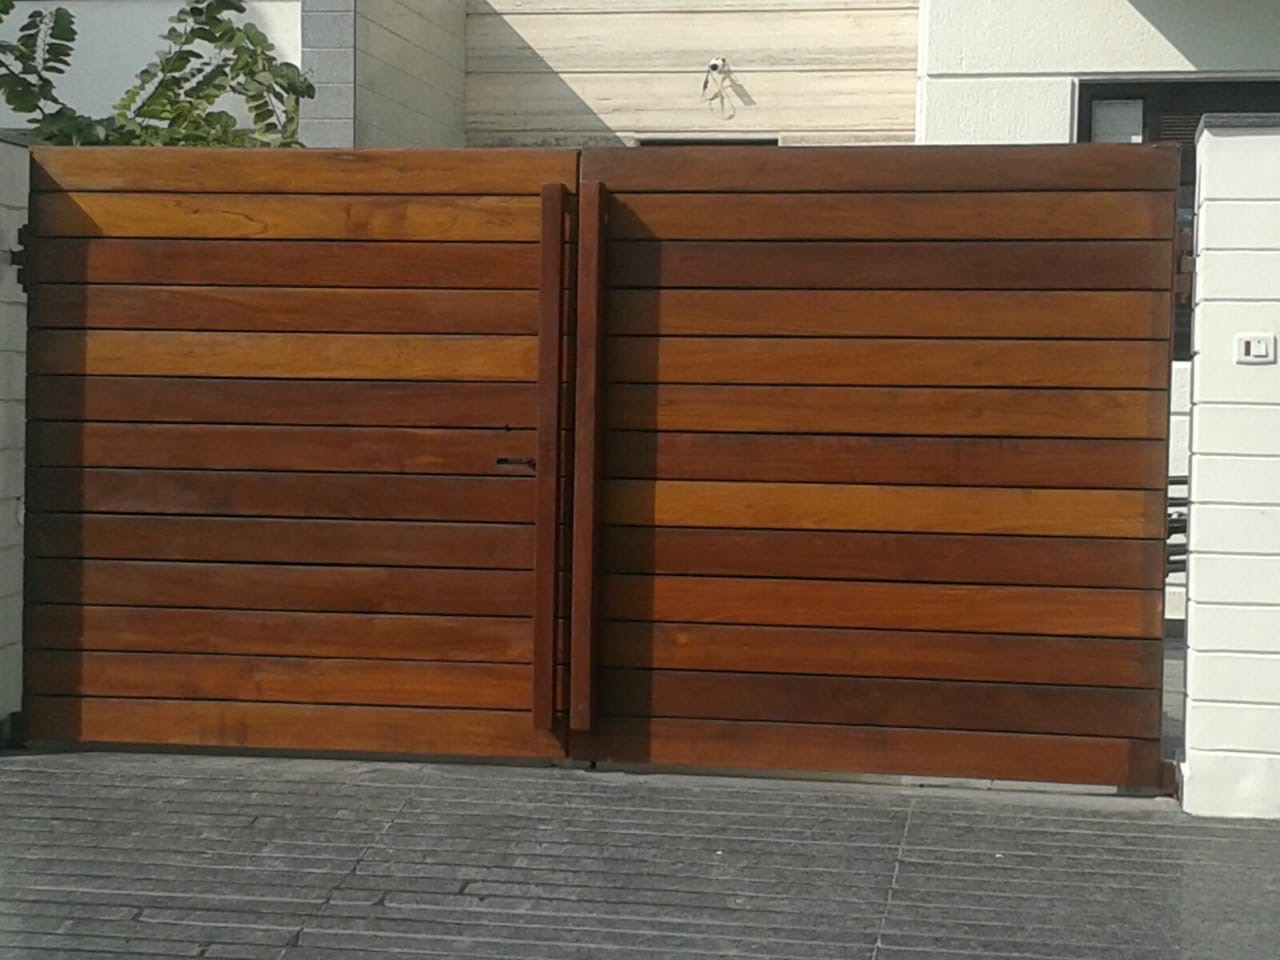 OUTDOOR DECKING - GATE APPLICATION